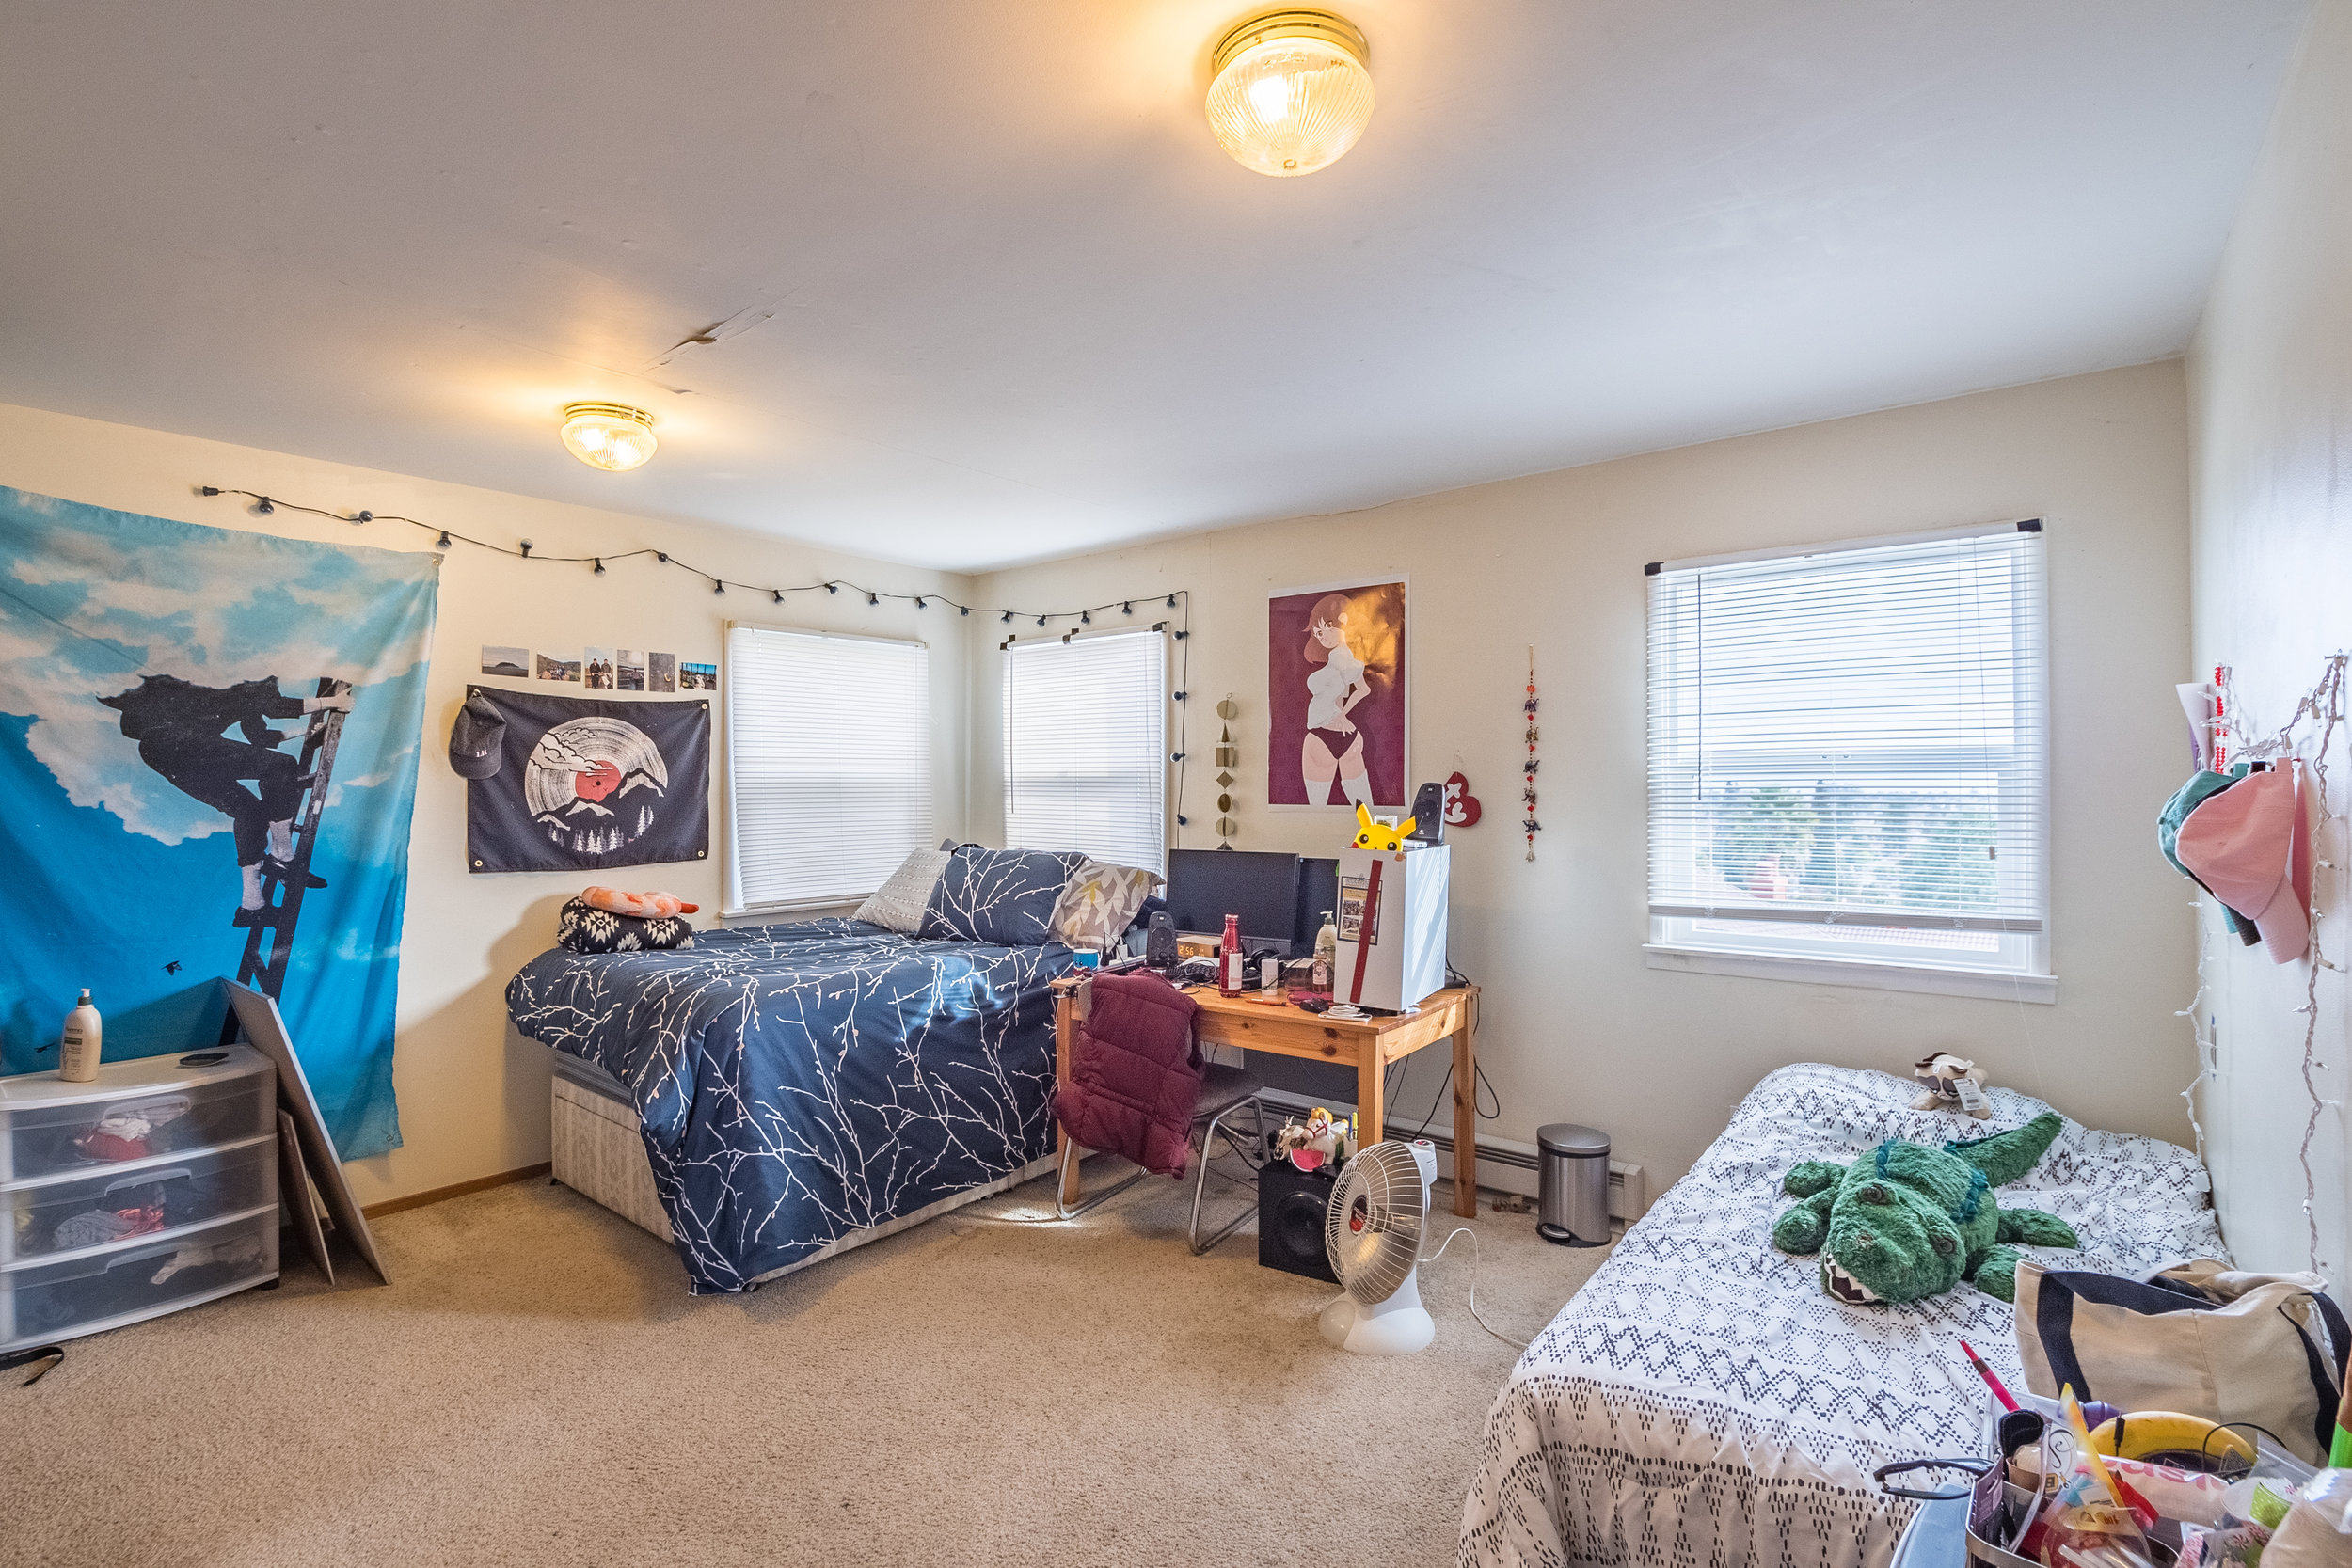 3 Bedroom Home in Santa Cruz Real Estate Agent.jpg